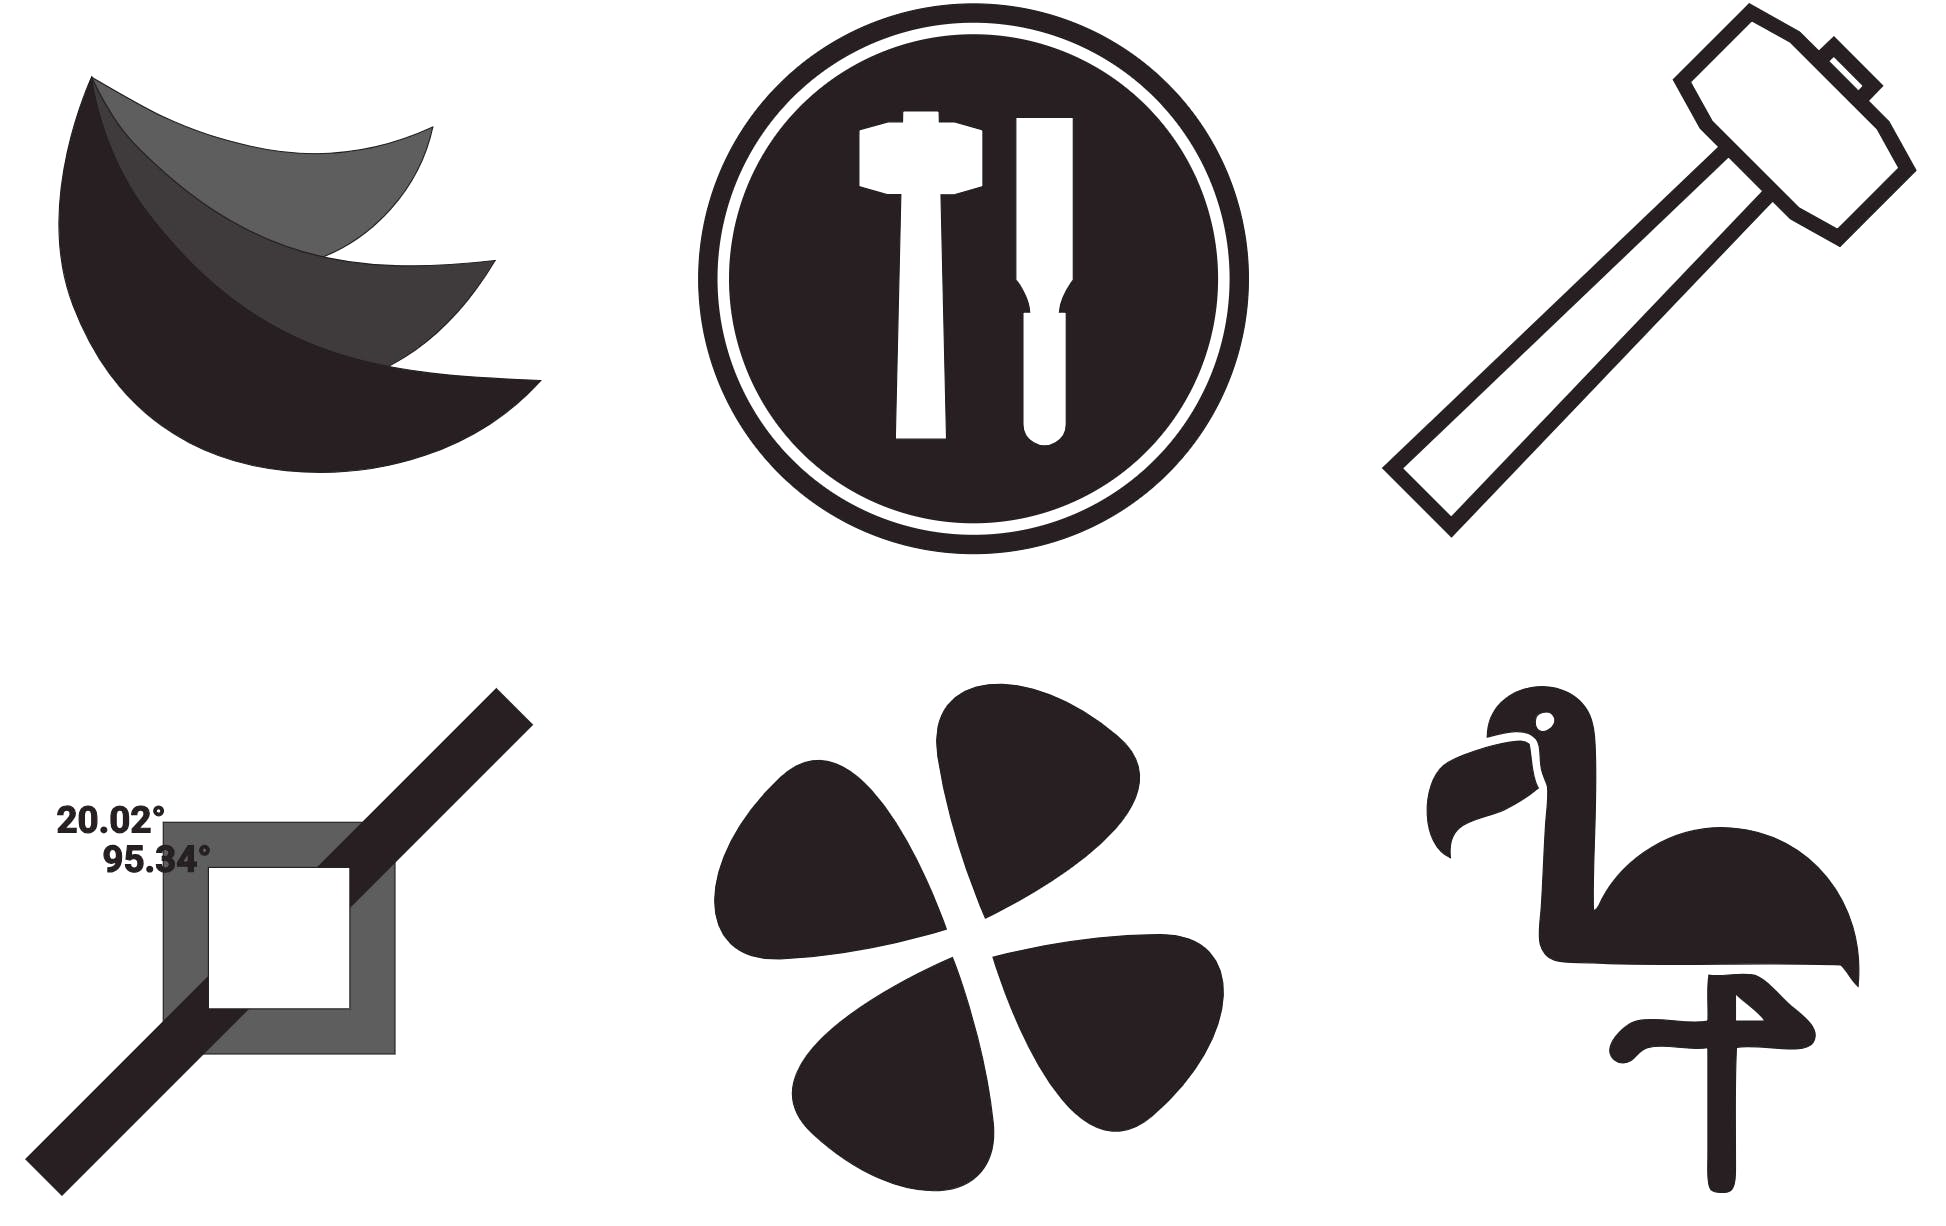 A sample of logo's taken from Logos With Design